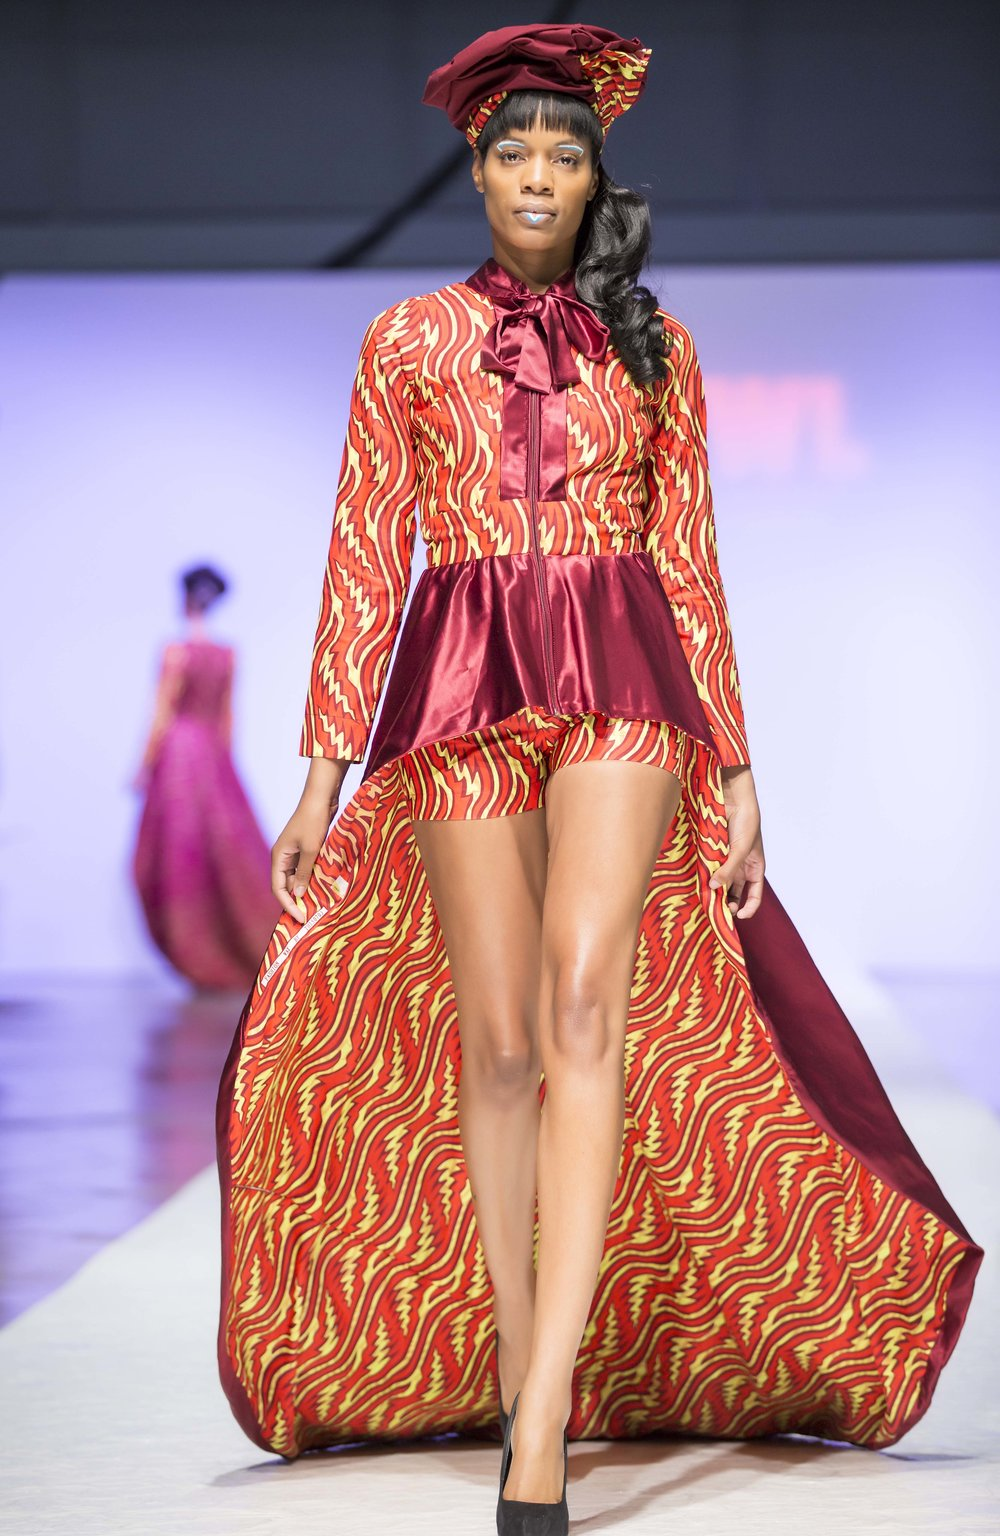 African Fashion Today-Joanna Mitroi Photography 0848 - lo res - Copy.jpg